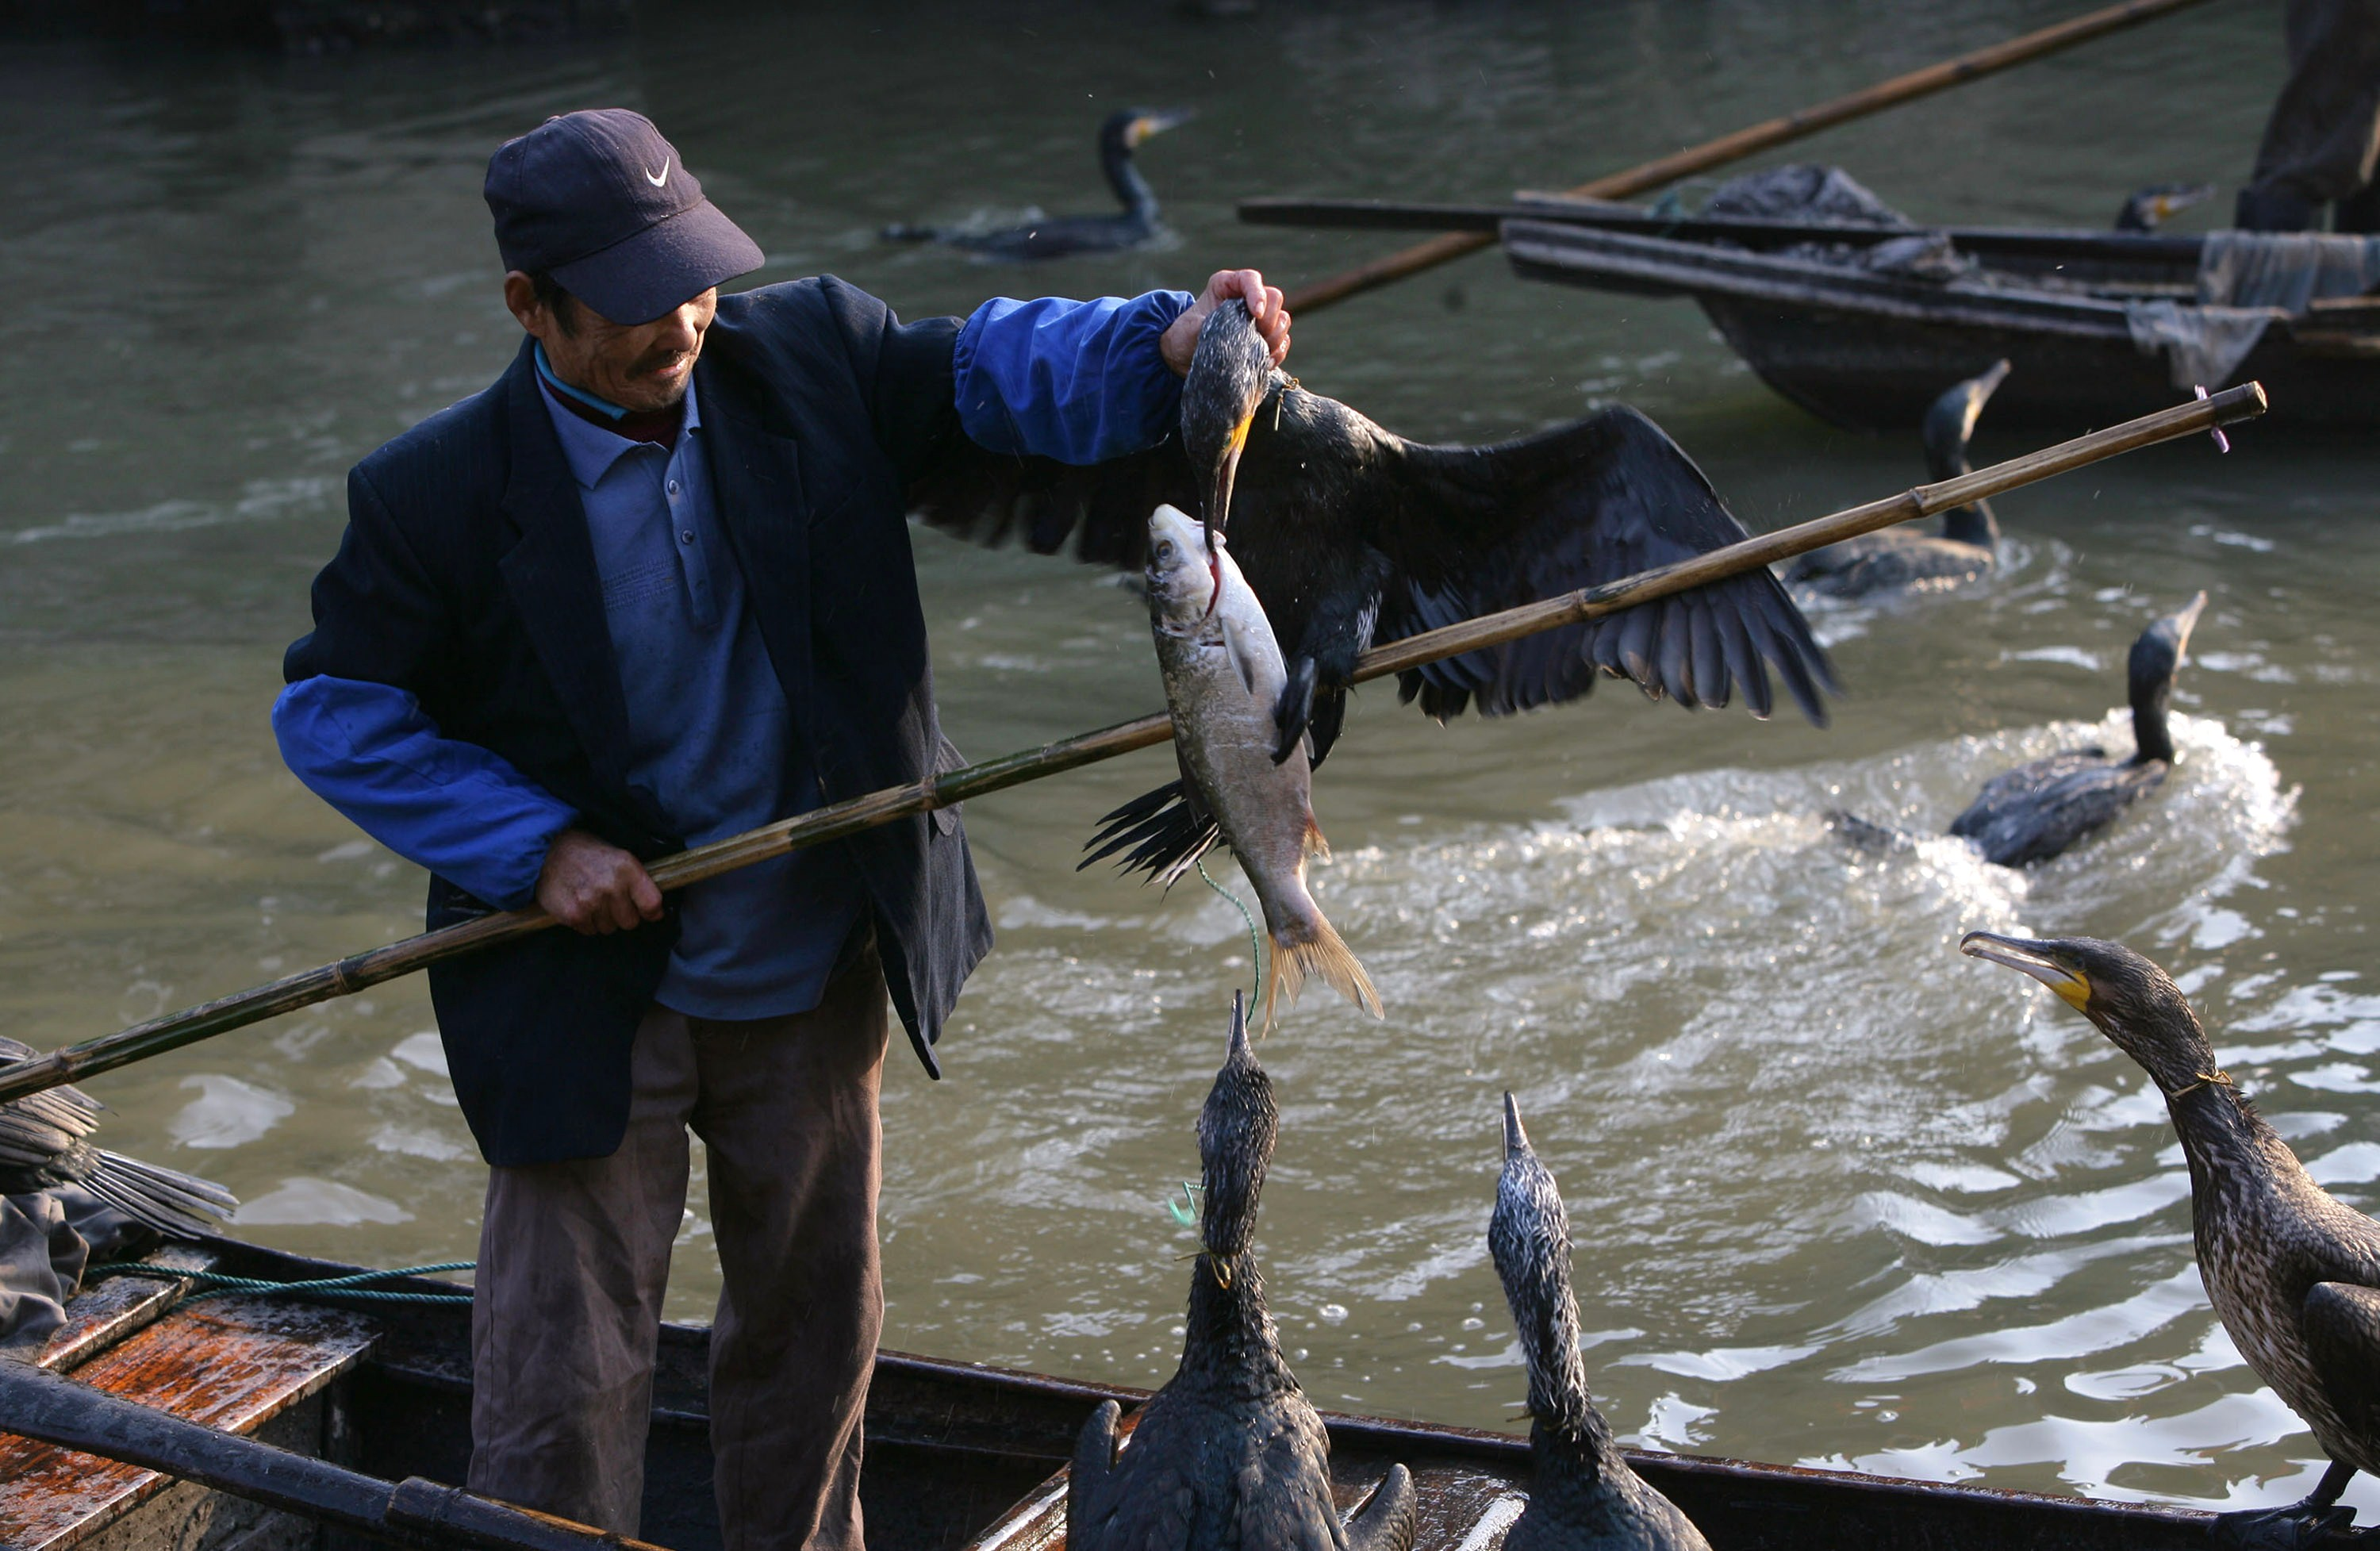 JIASHAN COUNTY, CHINA - NOVEMBER 27: (CHINA OUT) A fisherman takes a cormorant which catched a fish on a canal on November 27, 2007 in Xitang Town of Jiashan County, Zhejiang Province, China. The ancient Water Town Xitang, renowned for its traditional buildings and peaceful life, is a famous tourist destination. Xitang is specially known for its bridges, lanes, and ceilinged corridors. There are over 100 bridges of varied structures built in the Ming and Qing Dynasties. (Photo by China Photos/Getty Images)